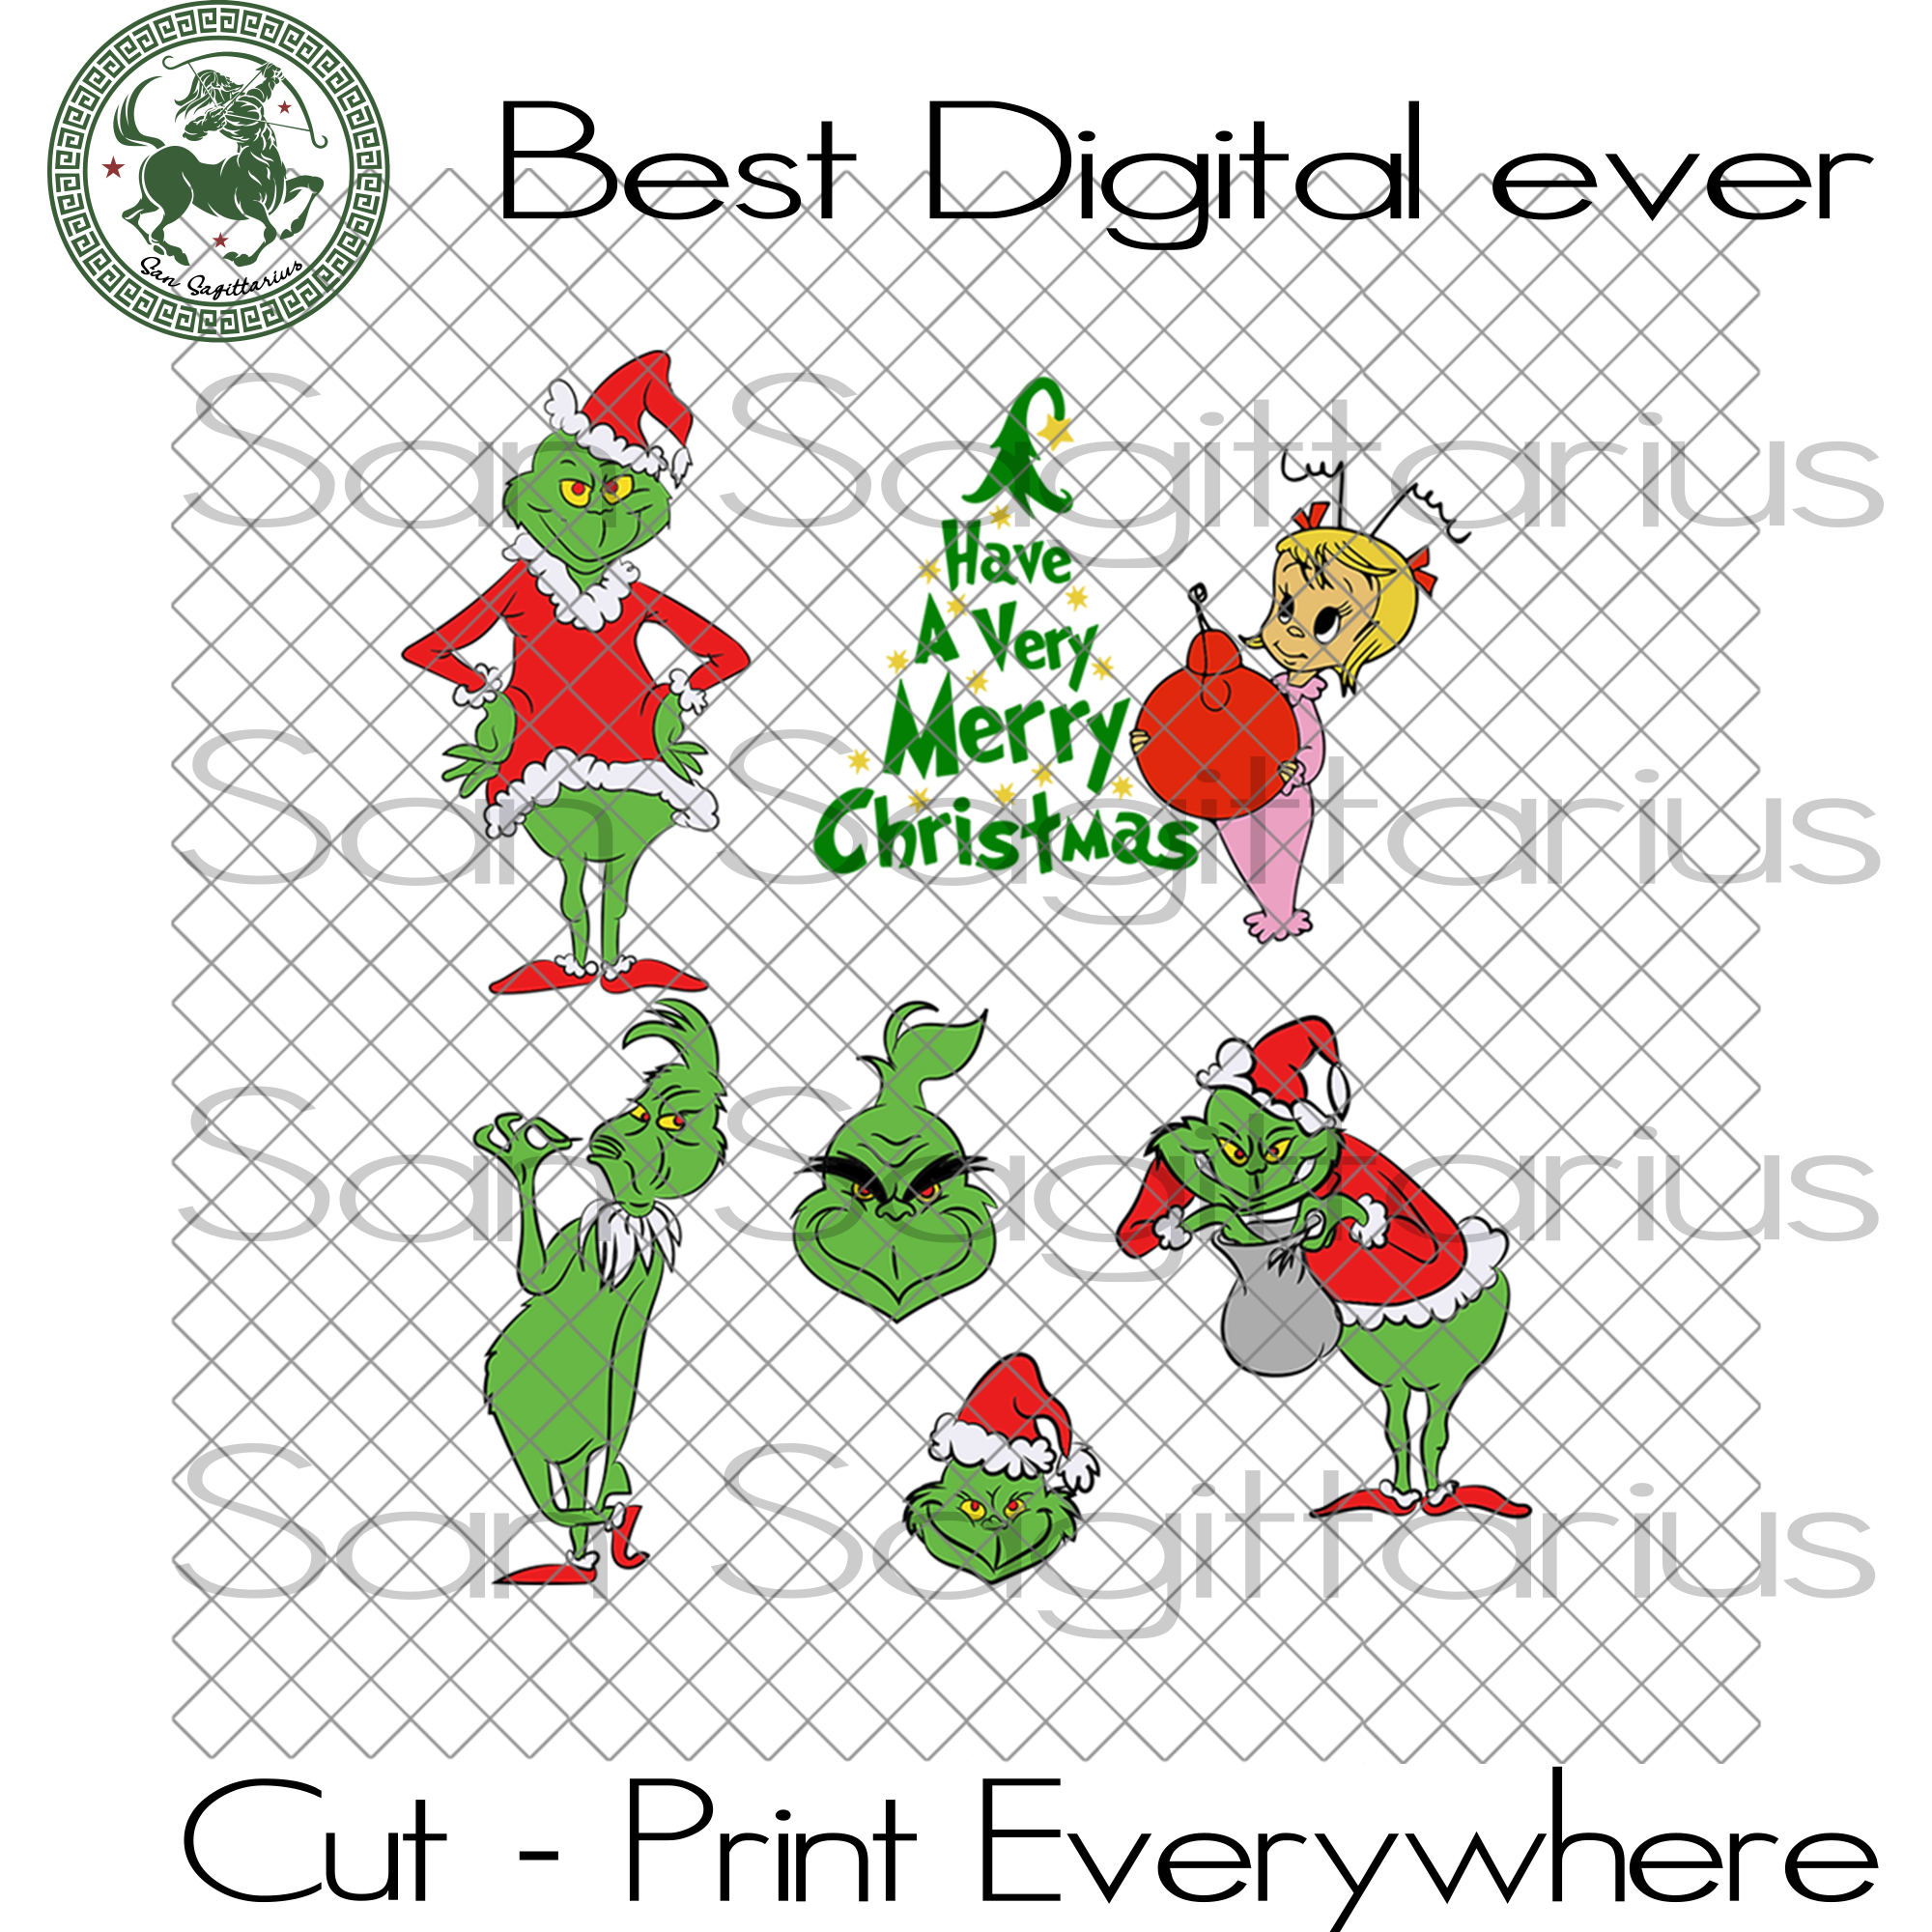 Have A Very Merry Christmas, Grinch,The Grinch Lover, The Grinch Svg, Grinch Svg, The Grinch, Grinch Cut File, Grinch Christmas, Grinch Lover, Grinch Cut Files,Grinches, The Grinch Svg, Chris